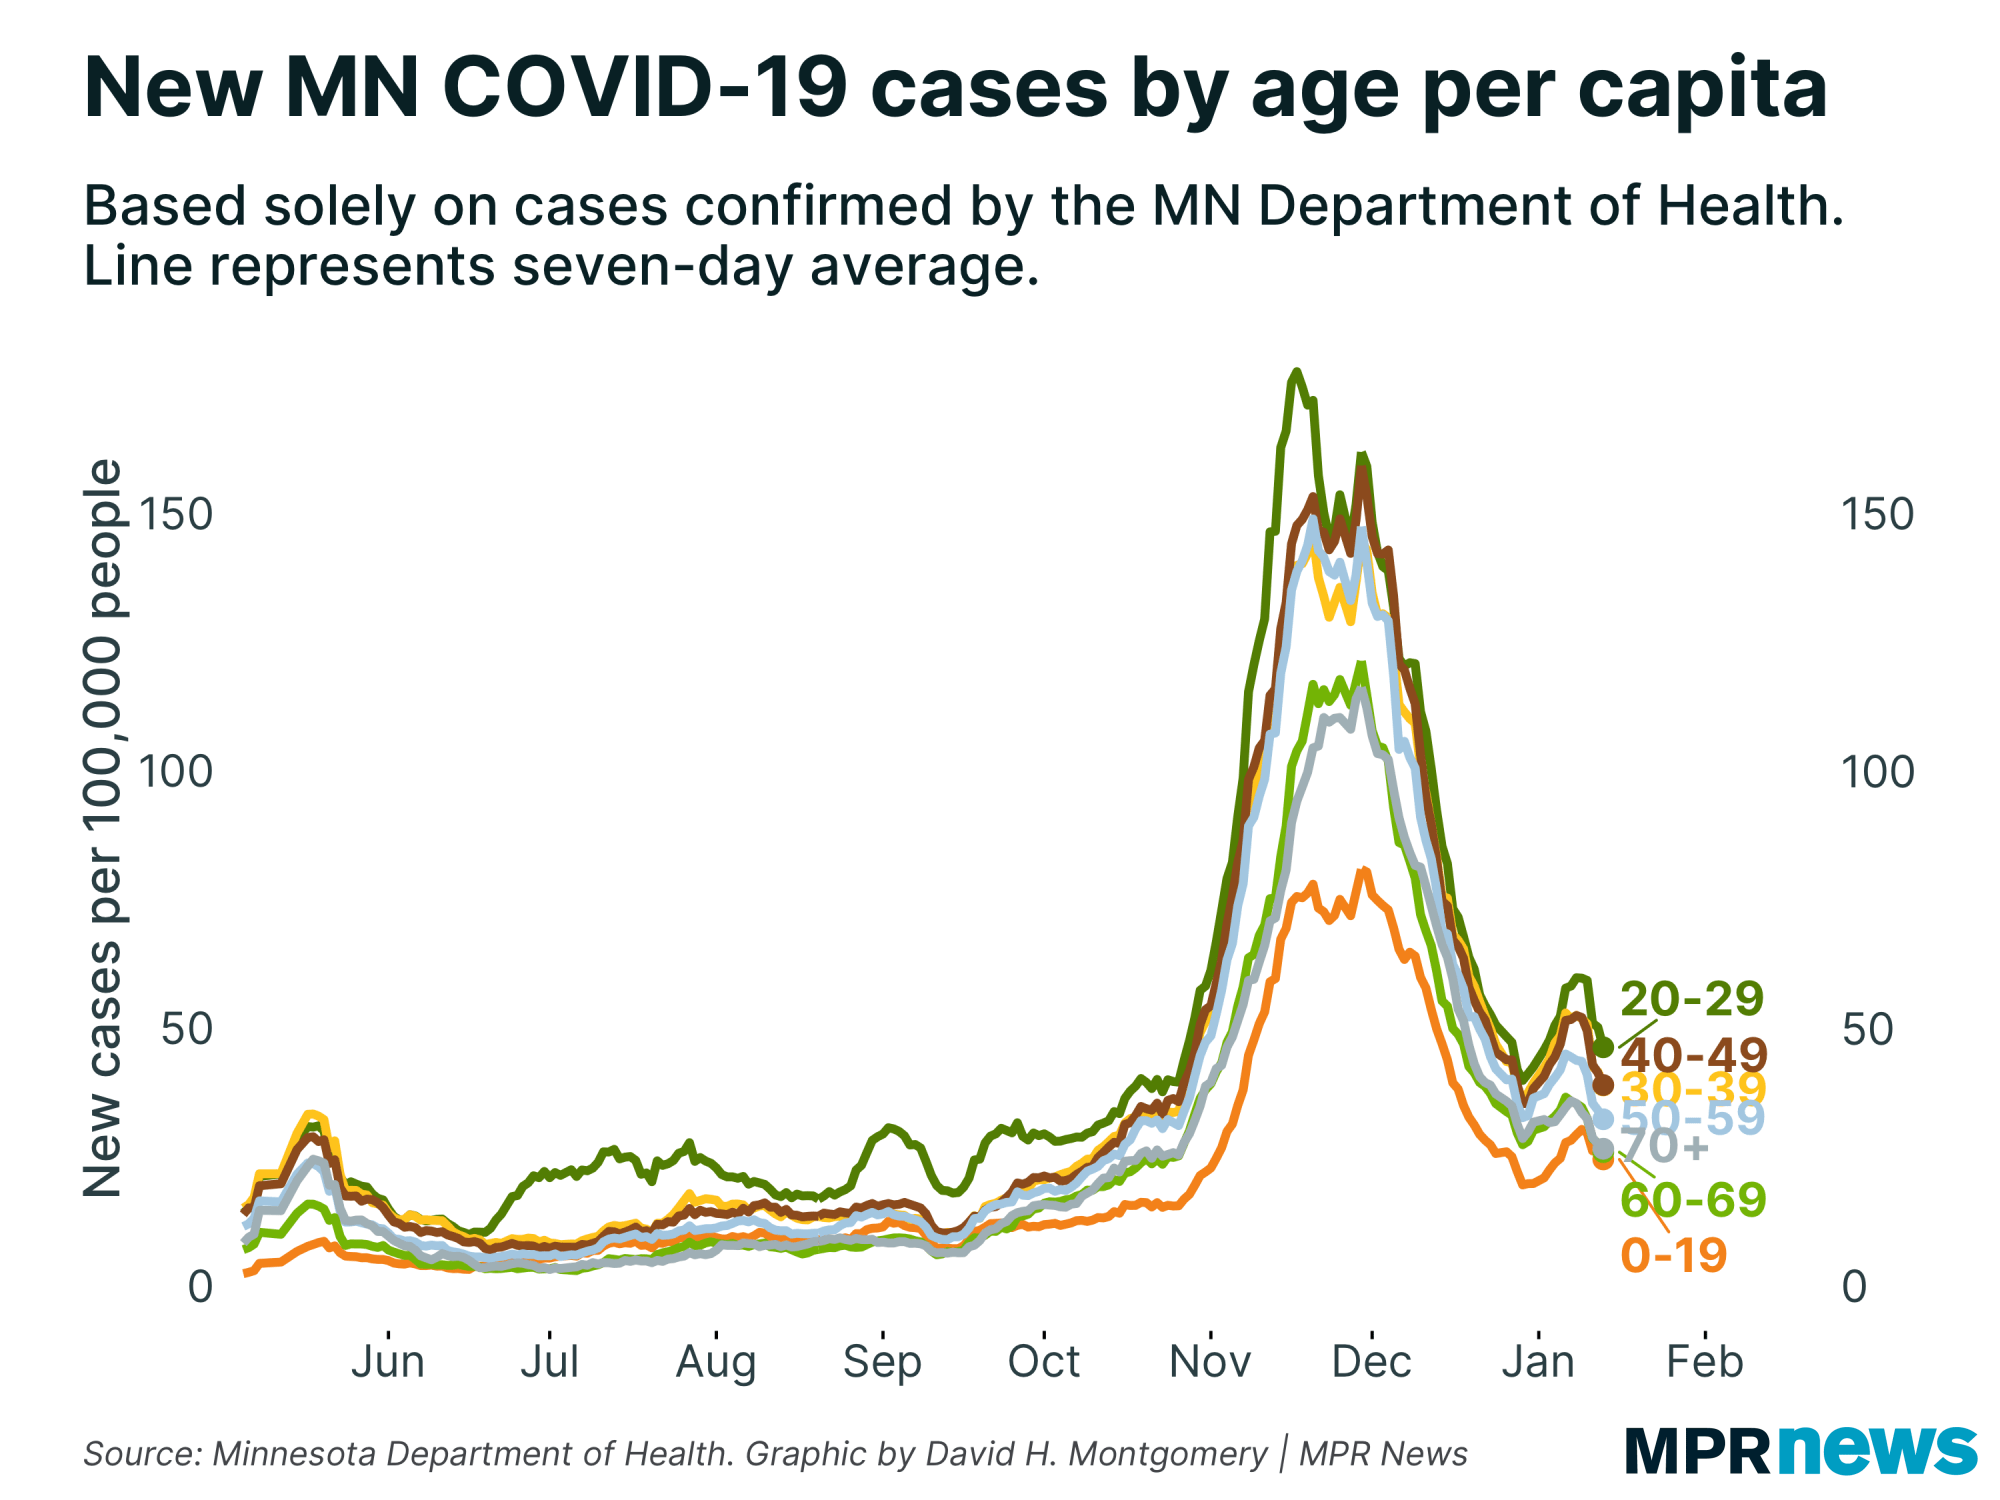 New COVID-19 Patients in Minnesota by Age, Adjusted by Population